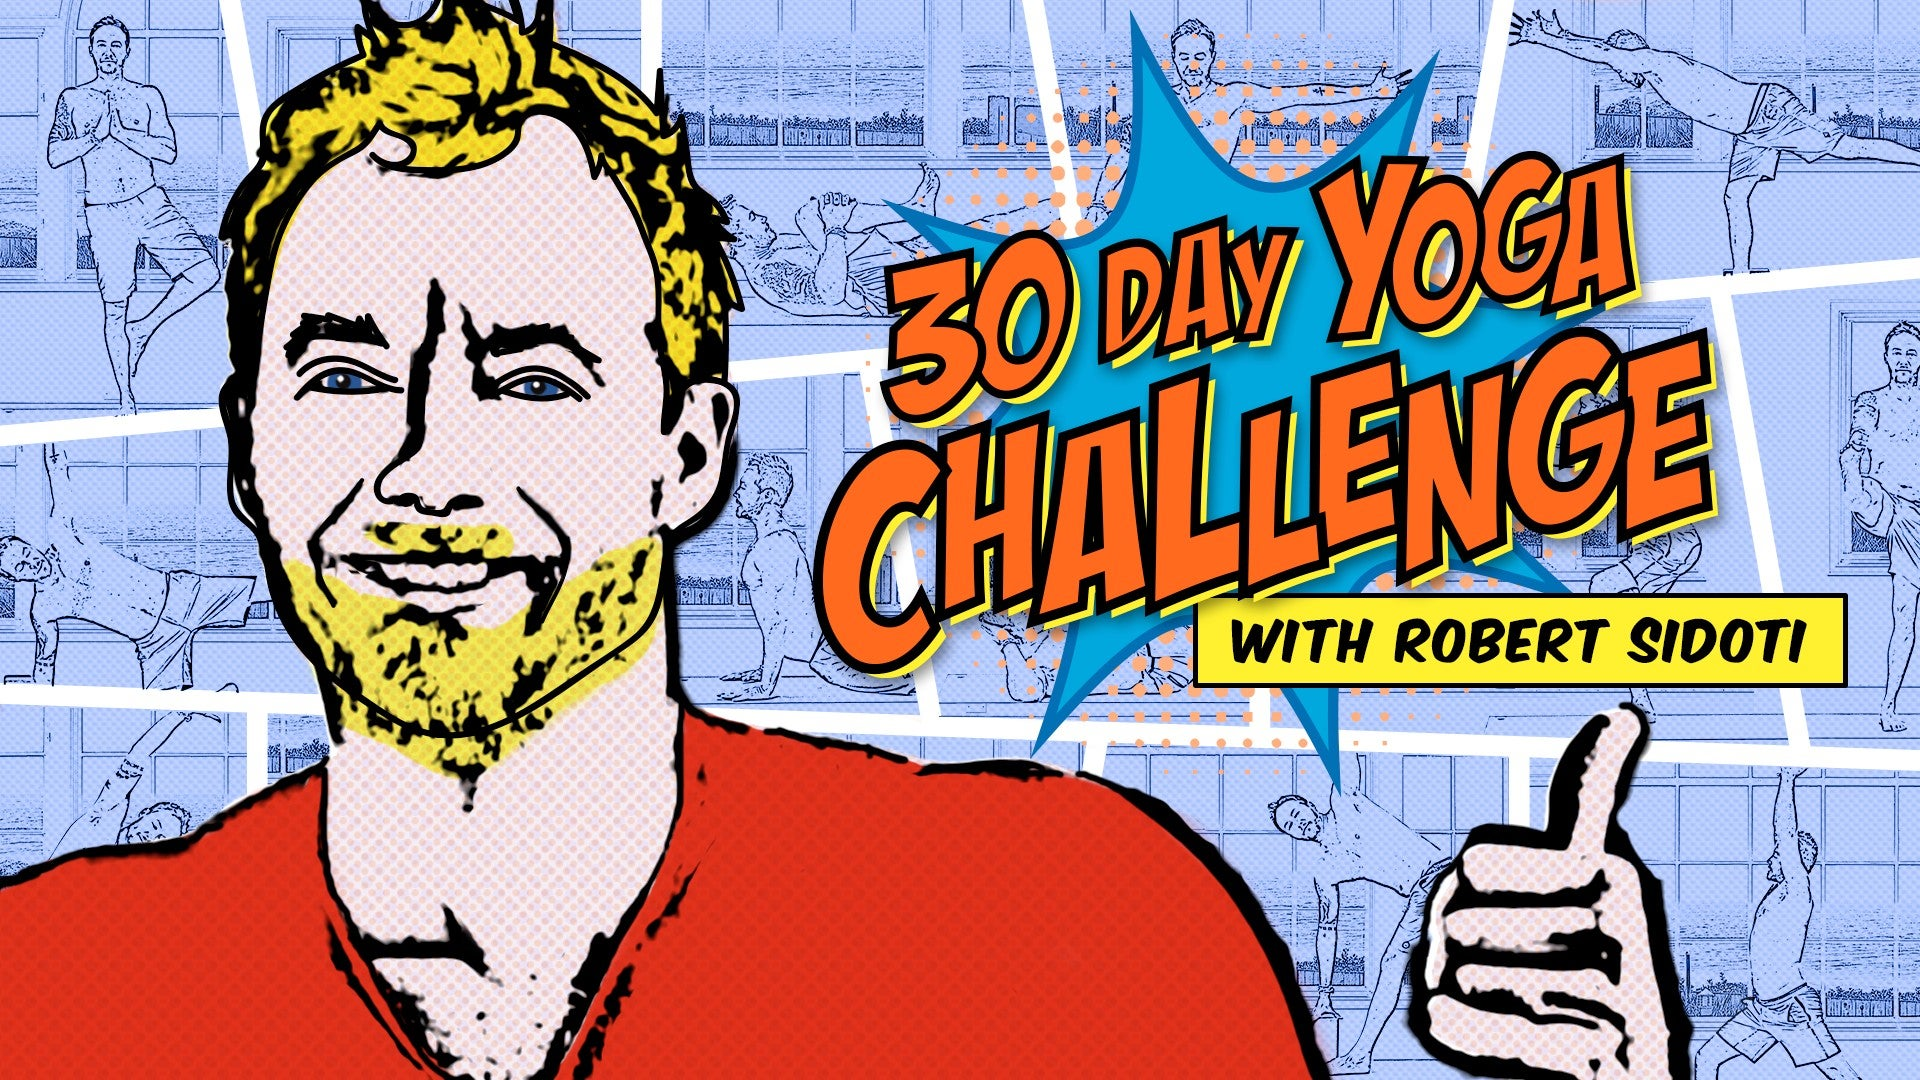 30 Day Yoga Challenge Artwork